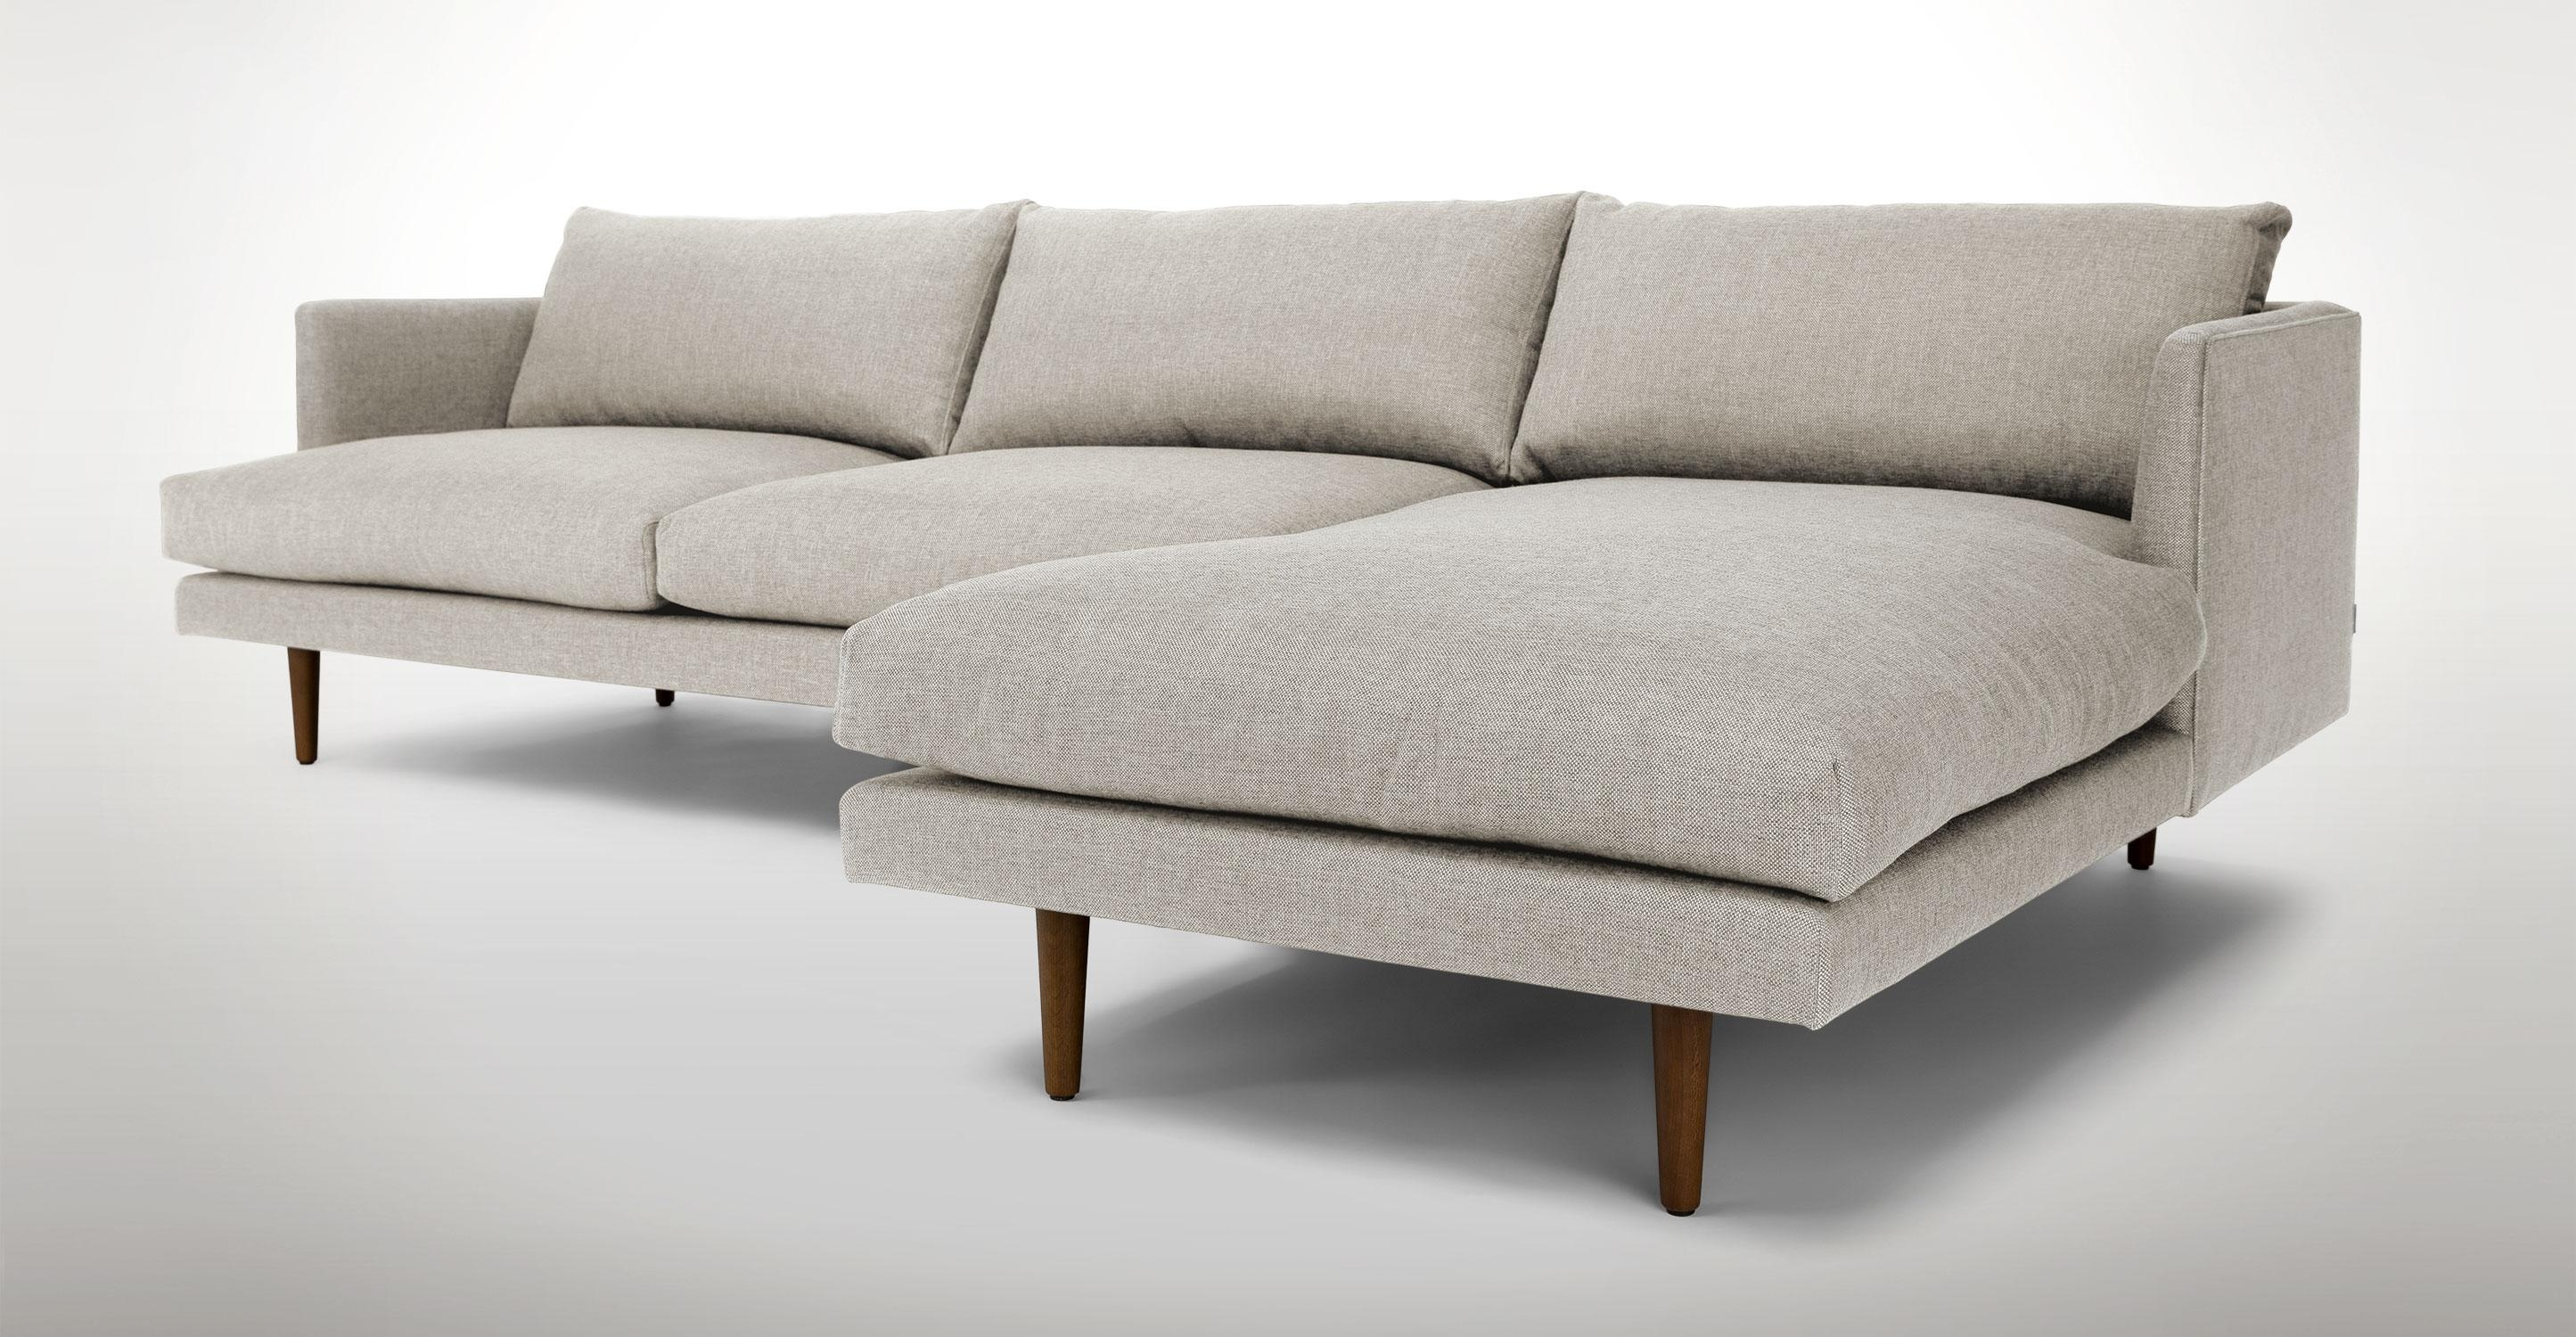 Decorating: Interesting Design Deep Sectional Sofa With Marvelous Within Deep Cushioned Sofas (View 11 of 22)